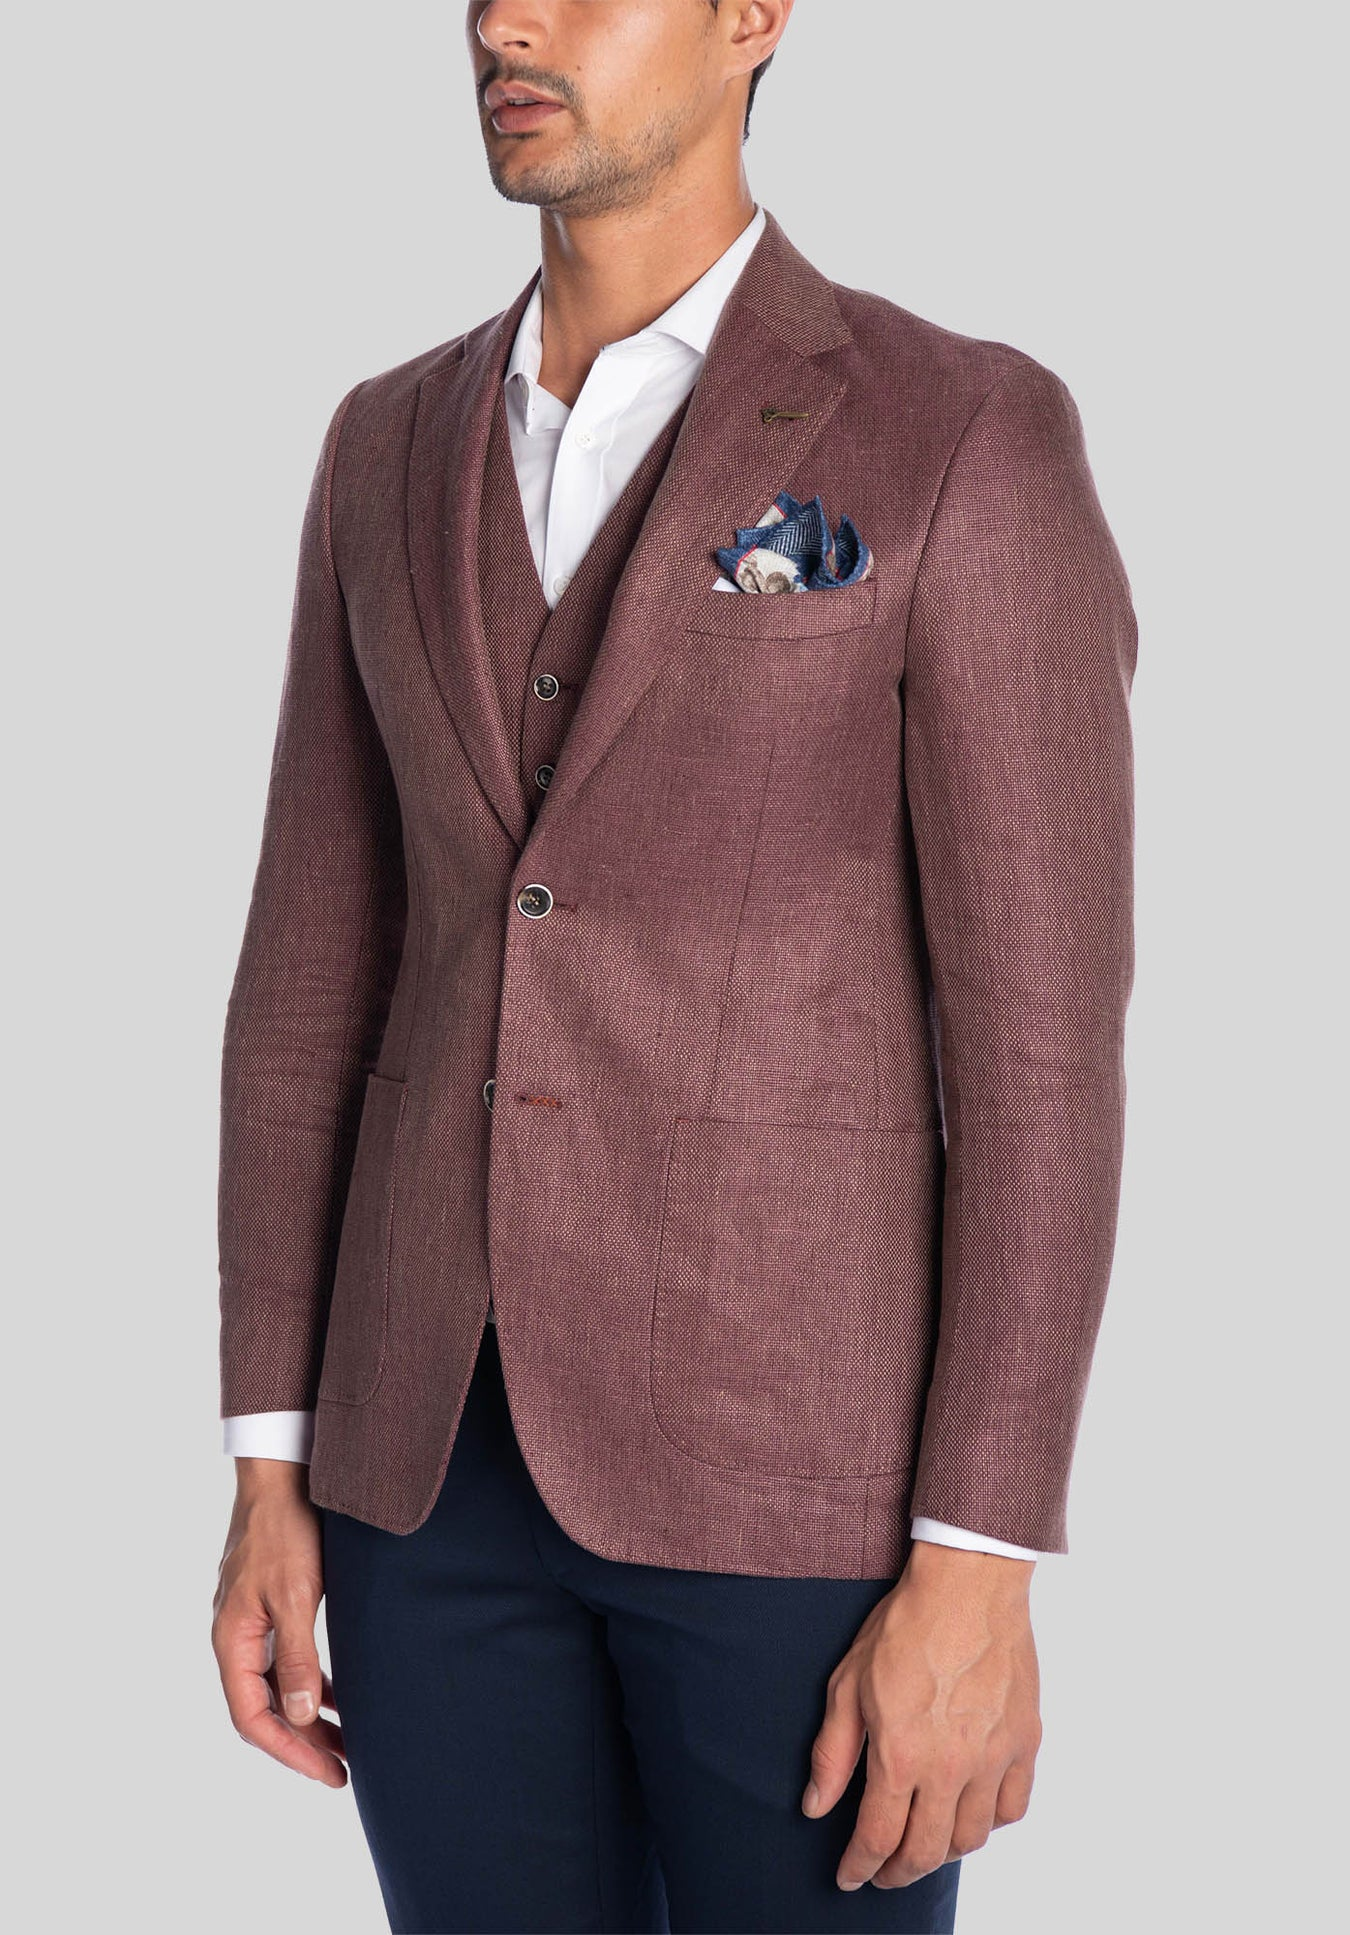 CRUISE SPORTS JACKET FJK830 - Rust